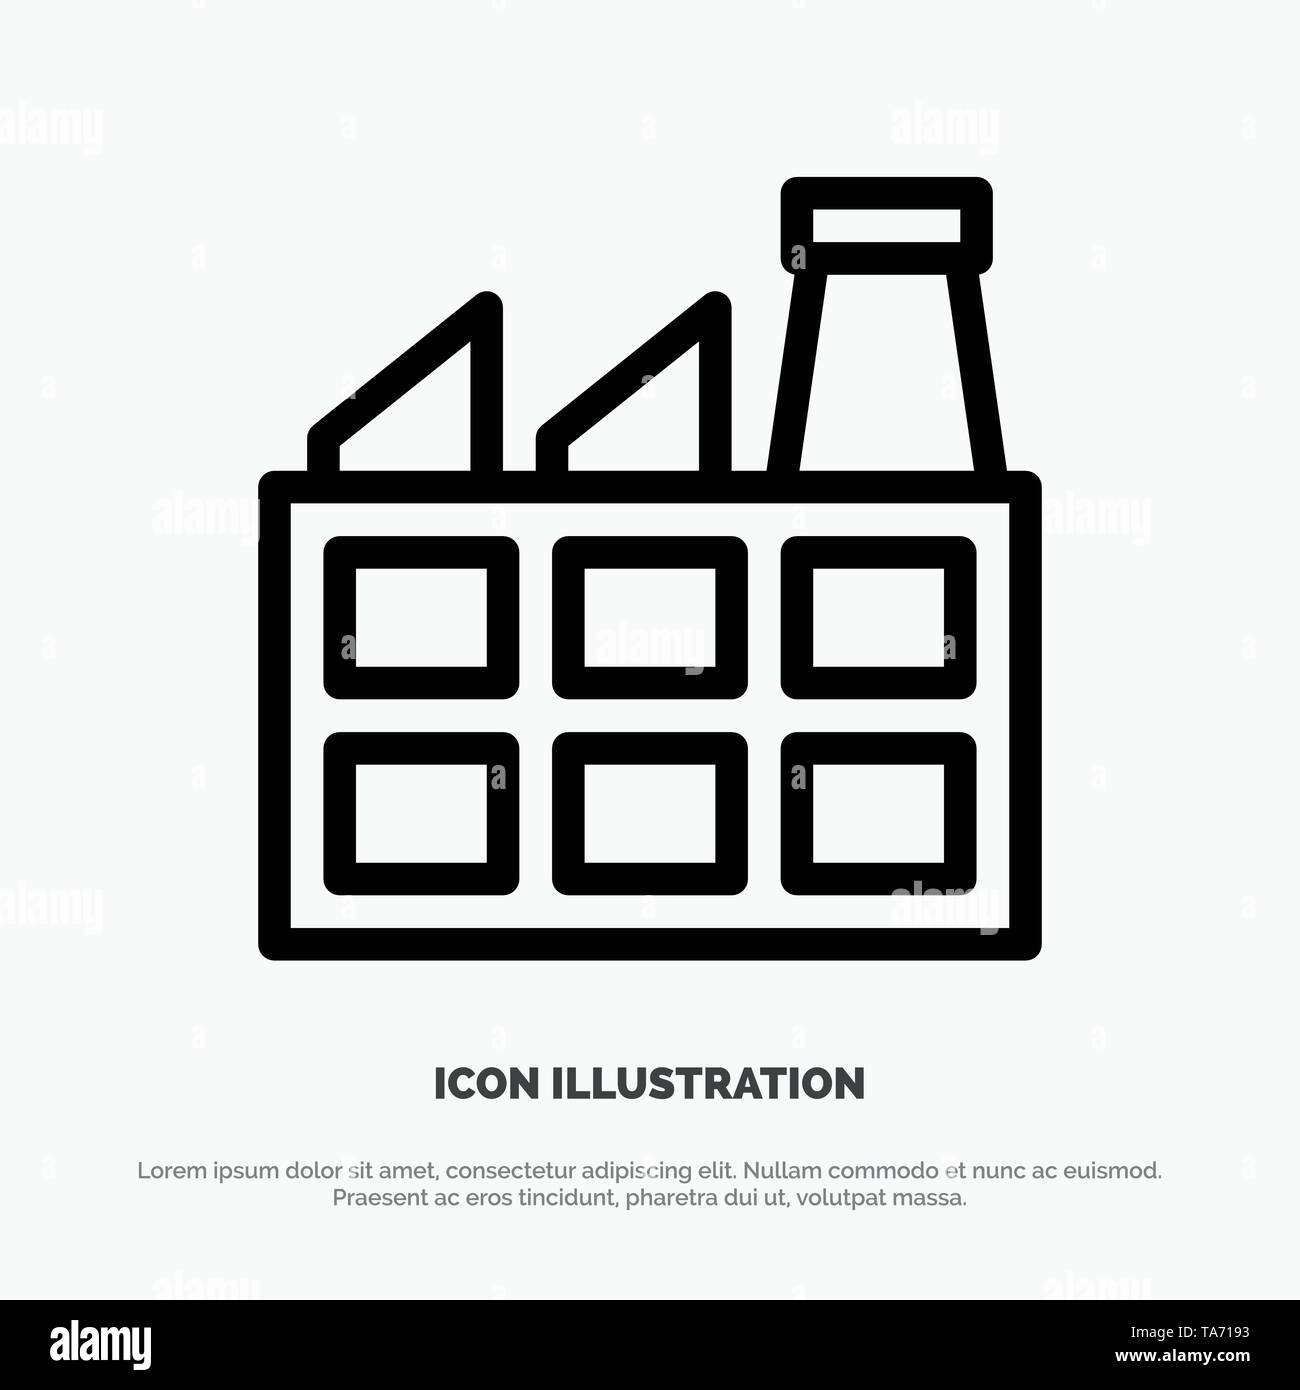 Construction, Factory, Industry Line Icon Vector - Stock Image